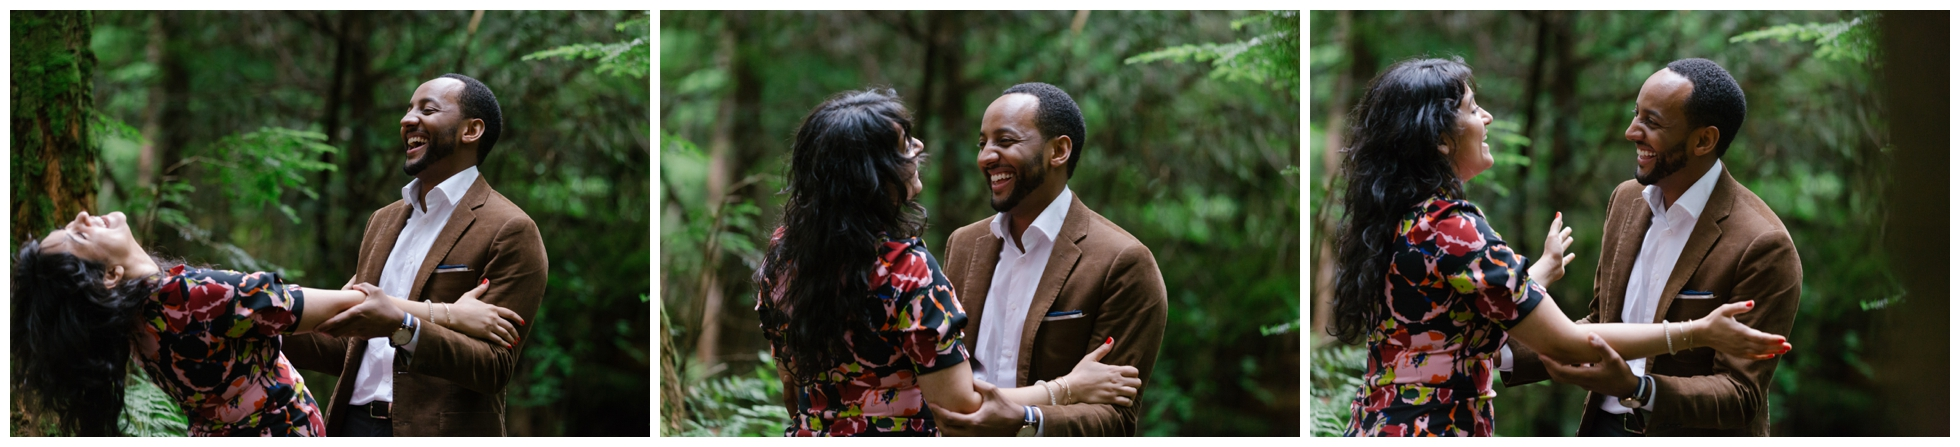 Tara and Petros Engagement Session (Life by Selena Photography)_0033.jpg